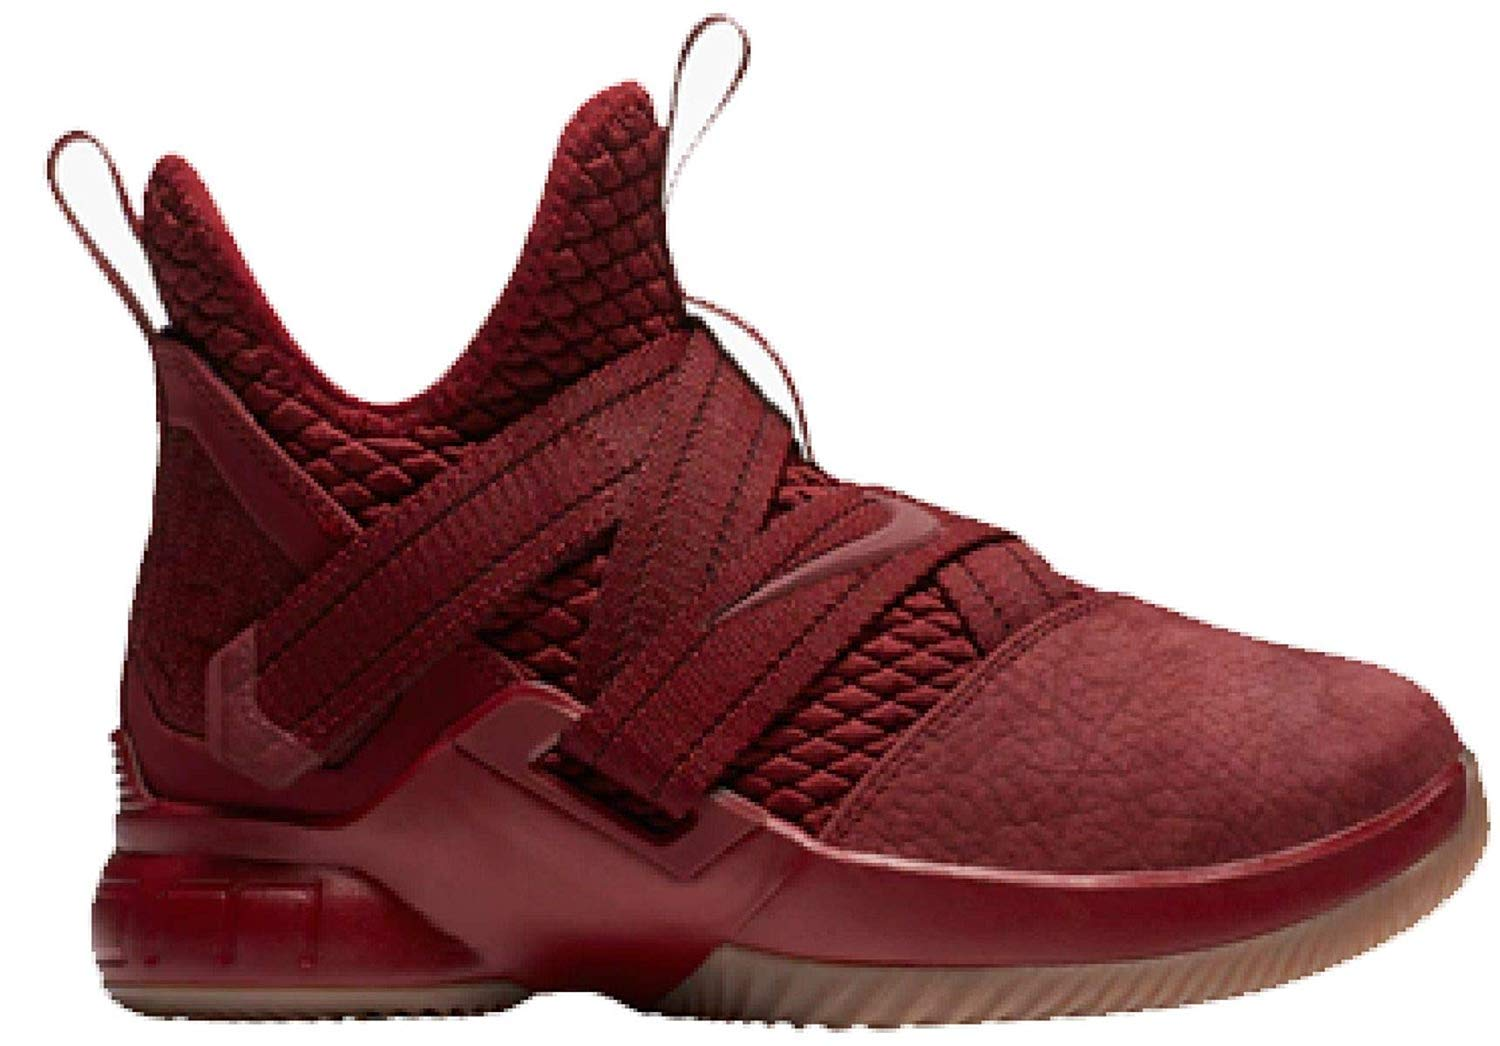 8ad0a749c4125 Galleon - NIKE Lebron Soldier XII SFG (GS) Girls Basketball-Shoes  AO2910-600 5.5Y - Team RED Team RED-Gum Light Brown